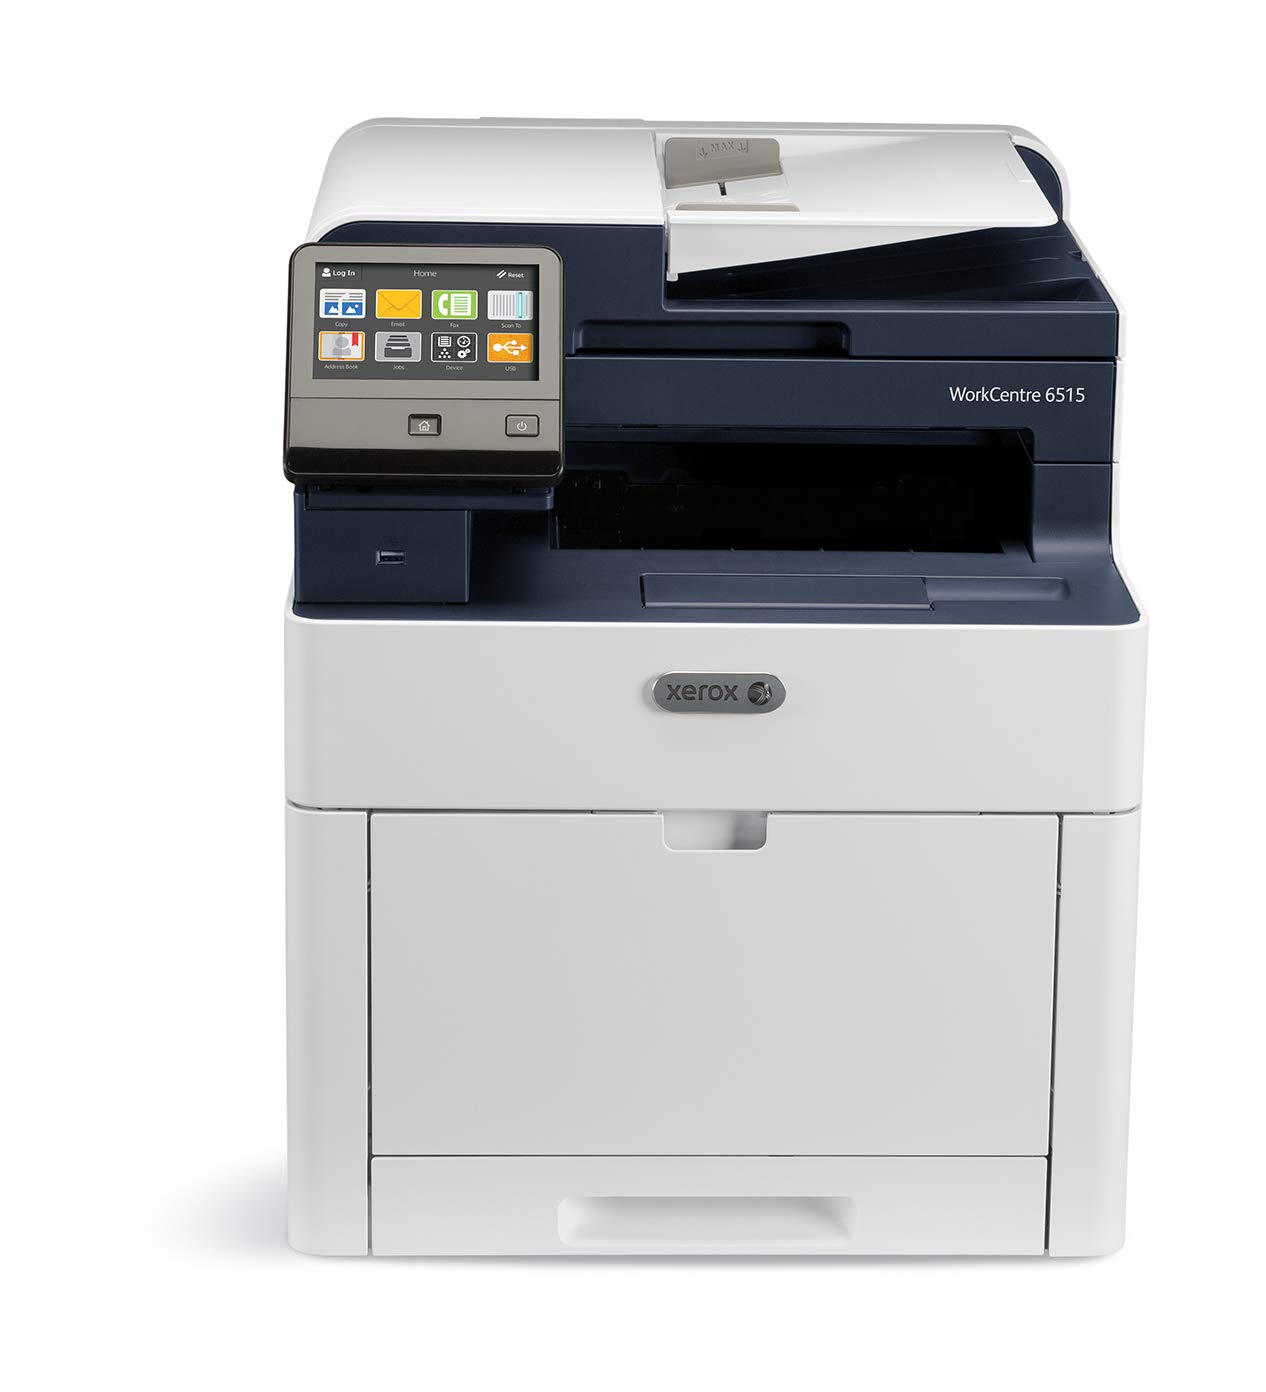 WC 6515 Colour Multifunction